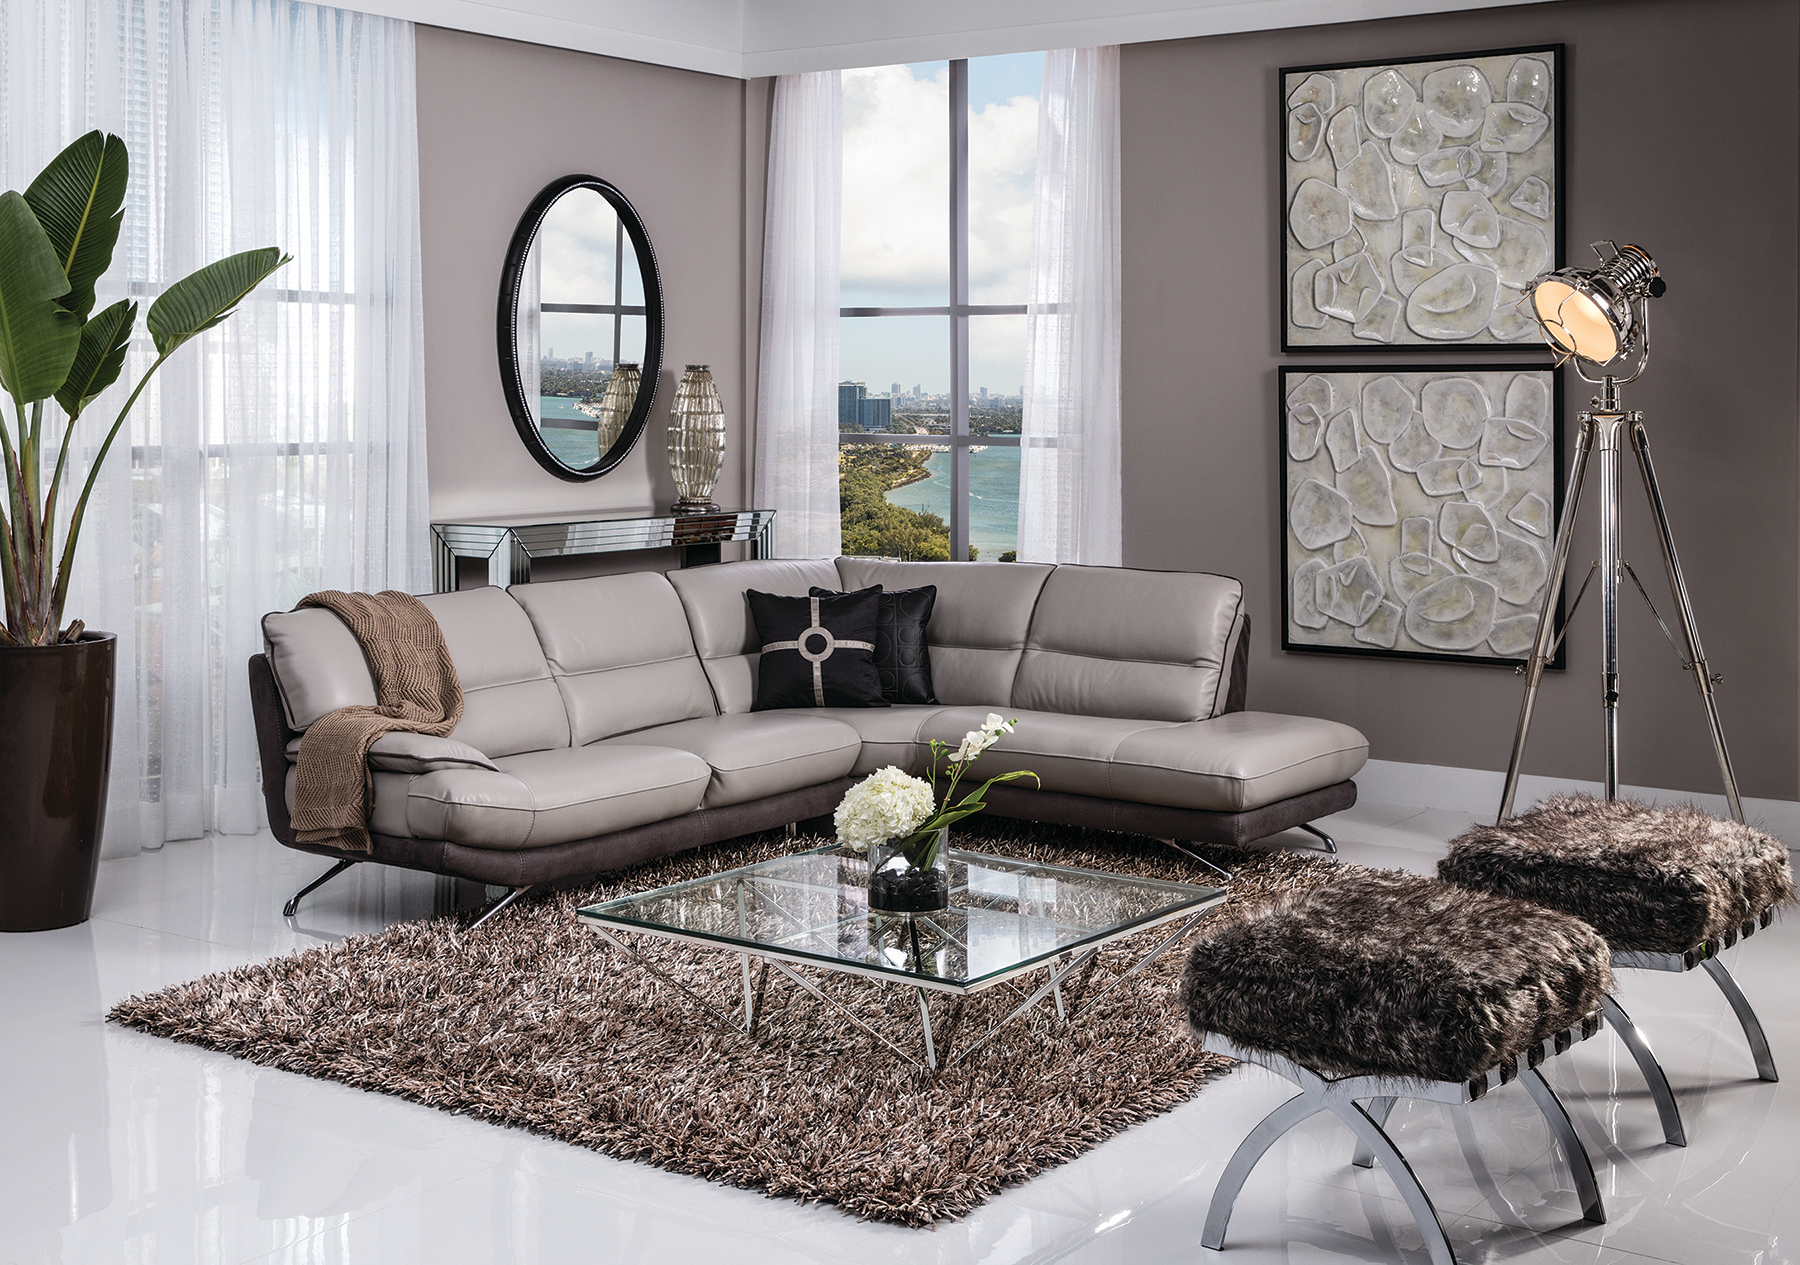 El Dorado Furniture Cutler Bay Boulevard Coupons Near Me In Cutler Bay 8coupons